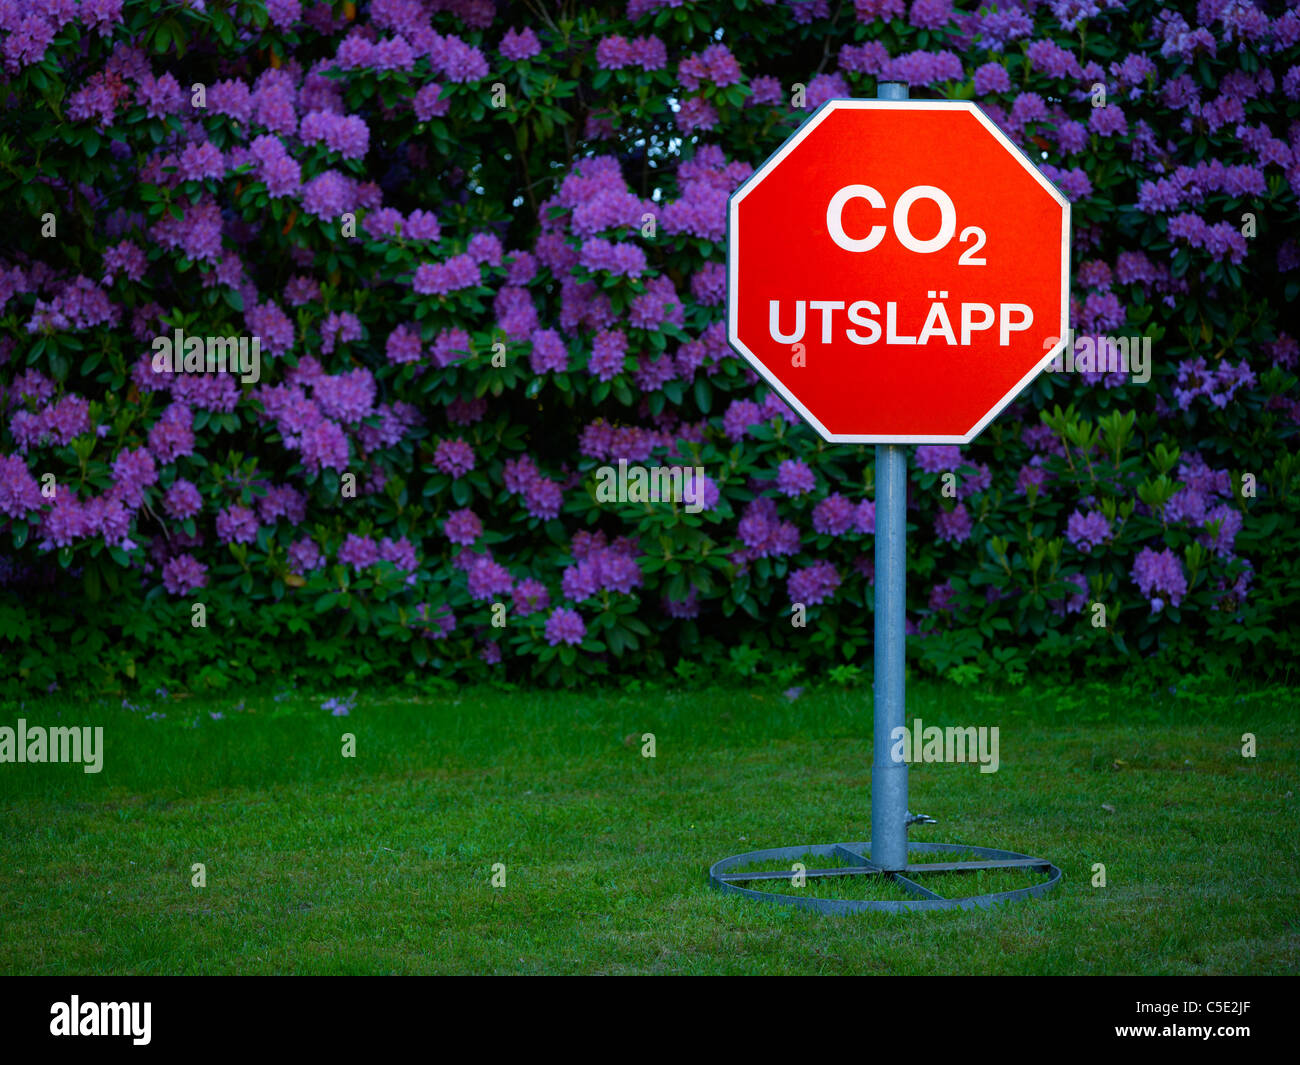 CO2 emission signpost on grass against flowers - Stock Image